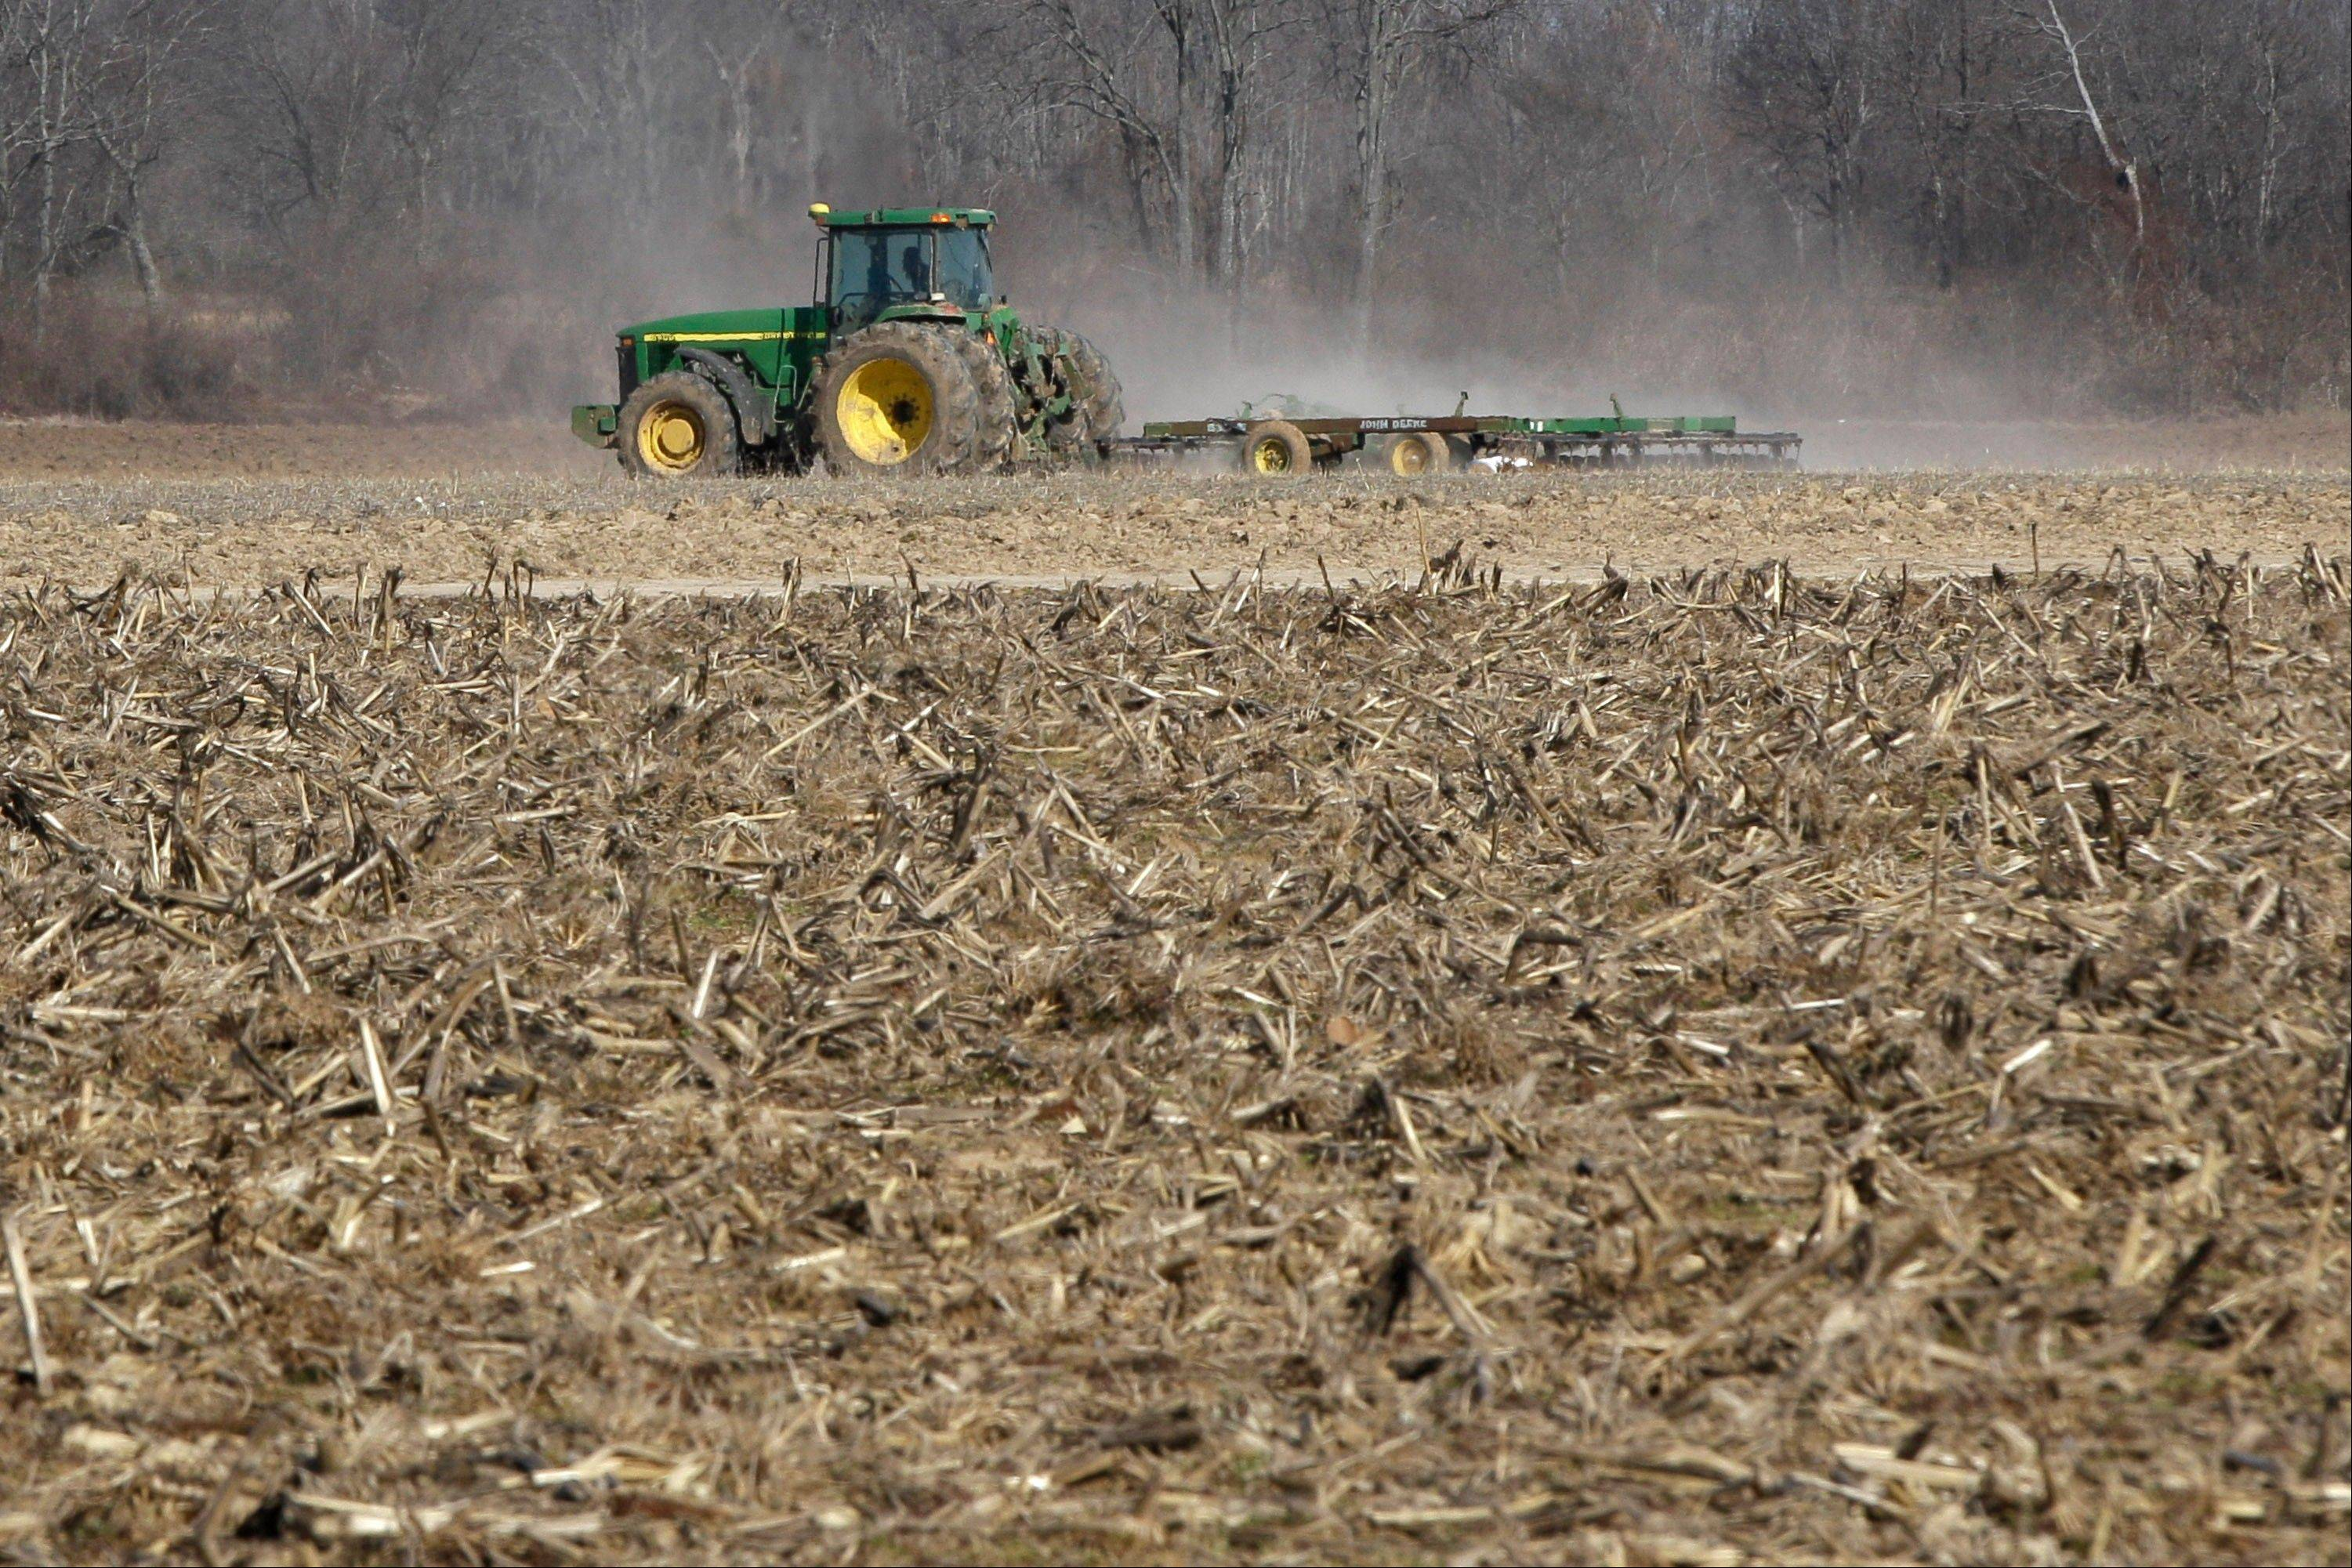 A farmer takes advantage of dry weather to till a field in preparation for spring planting near England, Ark., last month. Congress has given its final approval to a sweeping five-year farm bill that provides food for the needy and subsidies for farmers.